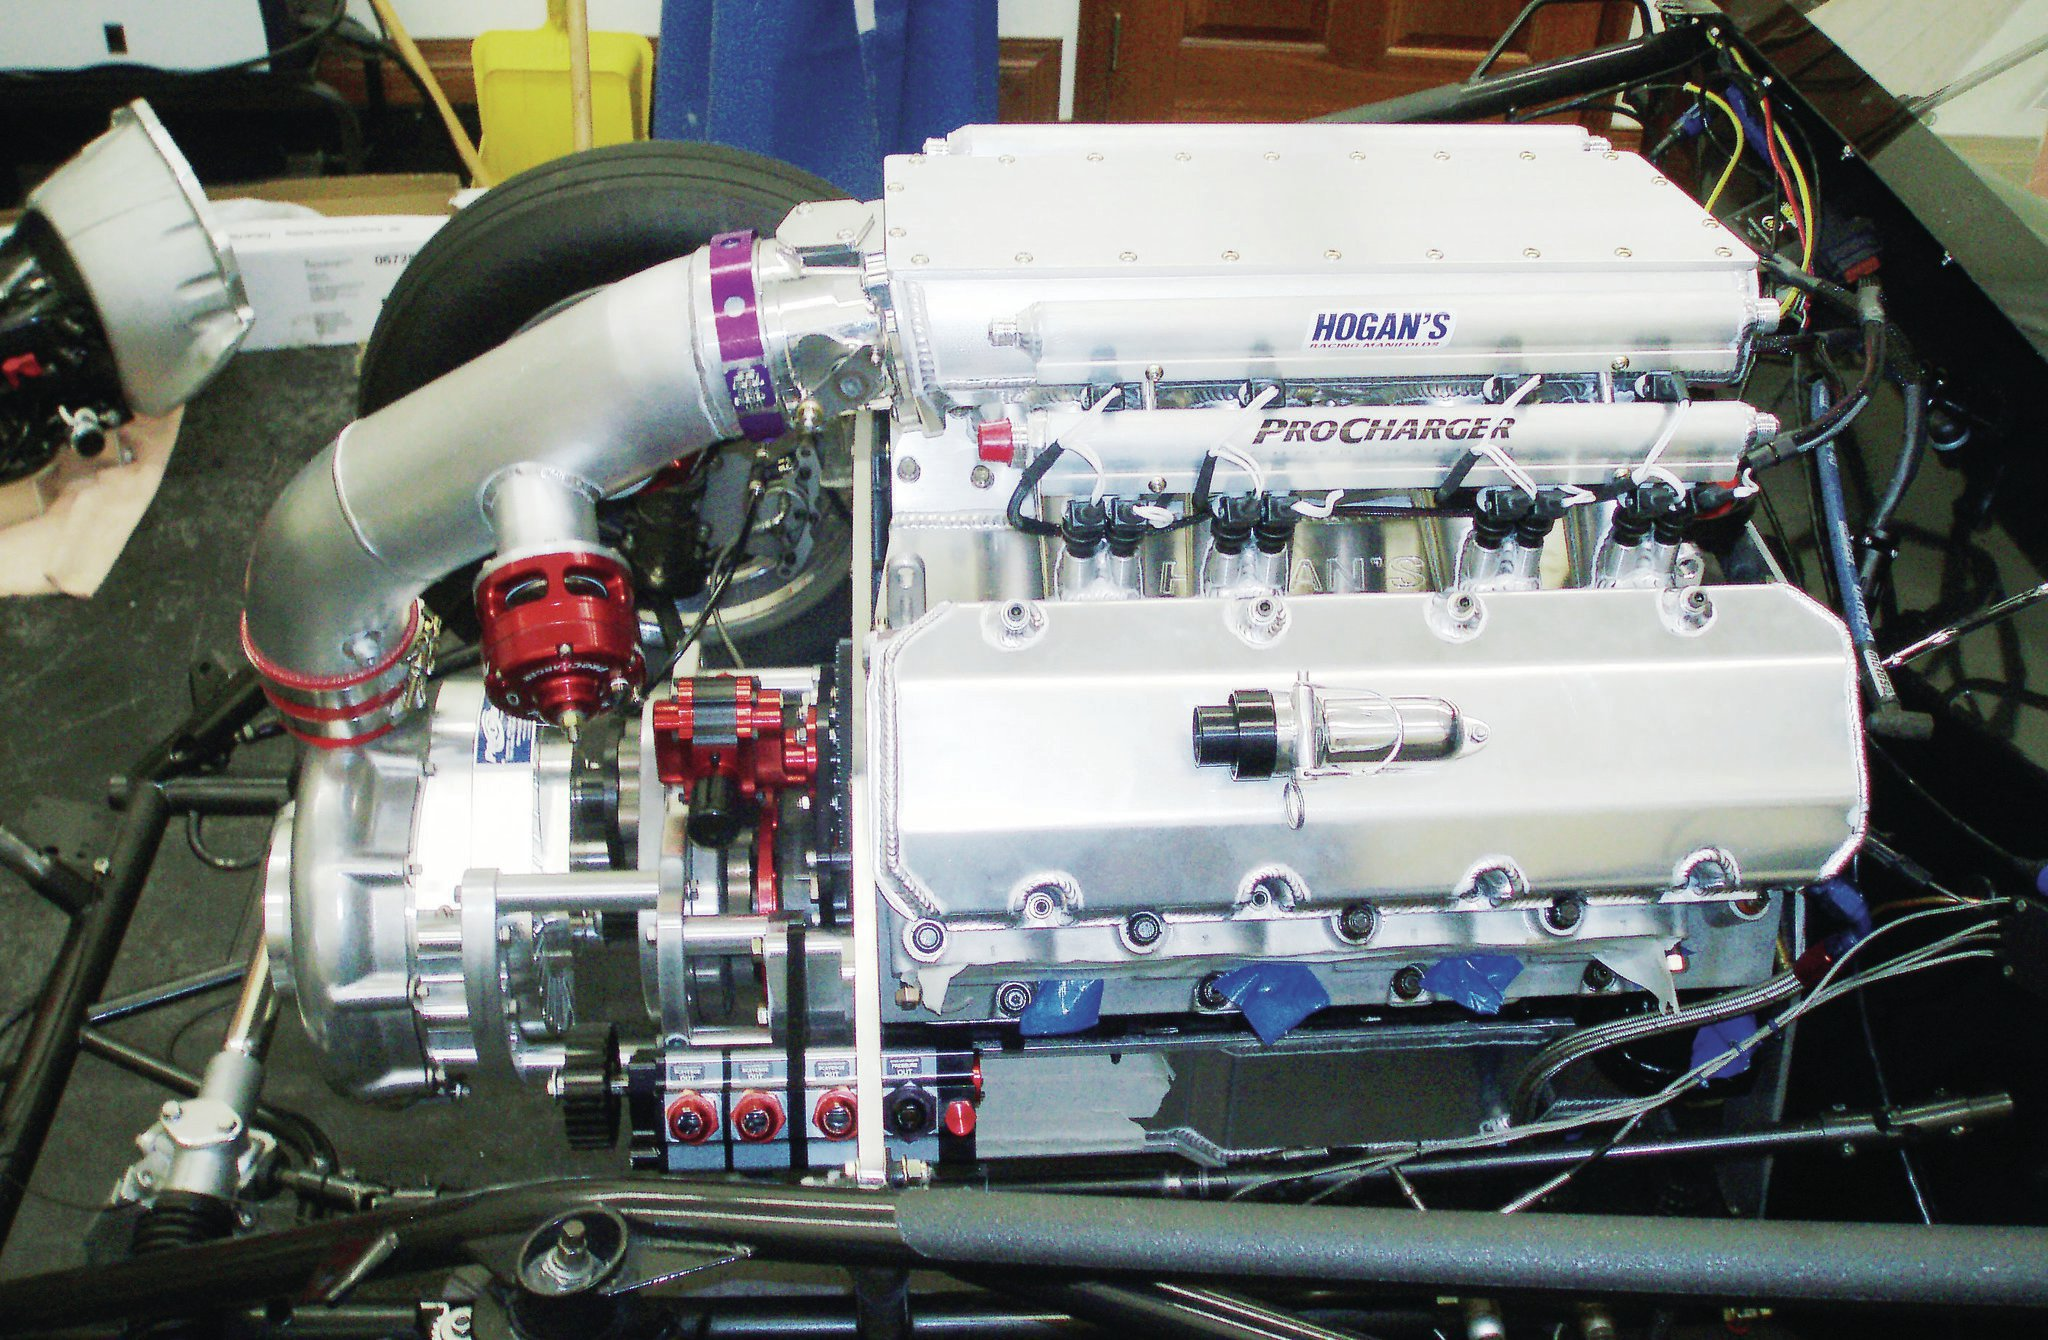 Centrifugal superchargers are basically crank-driven turbochargers. The current trend is to lose the belt and drive these huge centrifugal blowers directly off the crankshaft snout. That's a ProCharger F3R 139 on Jarod Wenrick's 565ci big-block Chevy in his NMCA Pro Street '68 Camaro. The crank drive is from The Supercharger Store (TheSuperchargerStore.com). Wenrick won the '07 NMCA Pro Street title running 6.40s at 220 mph.